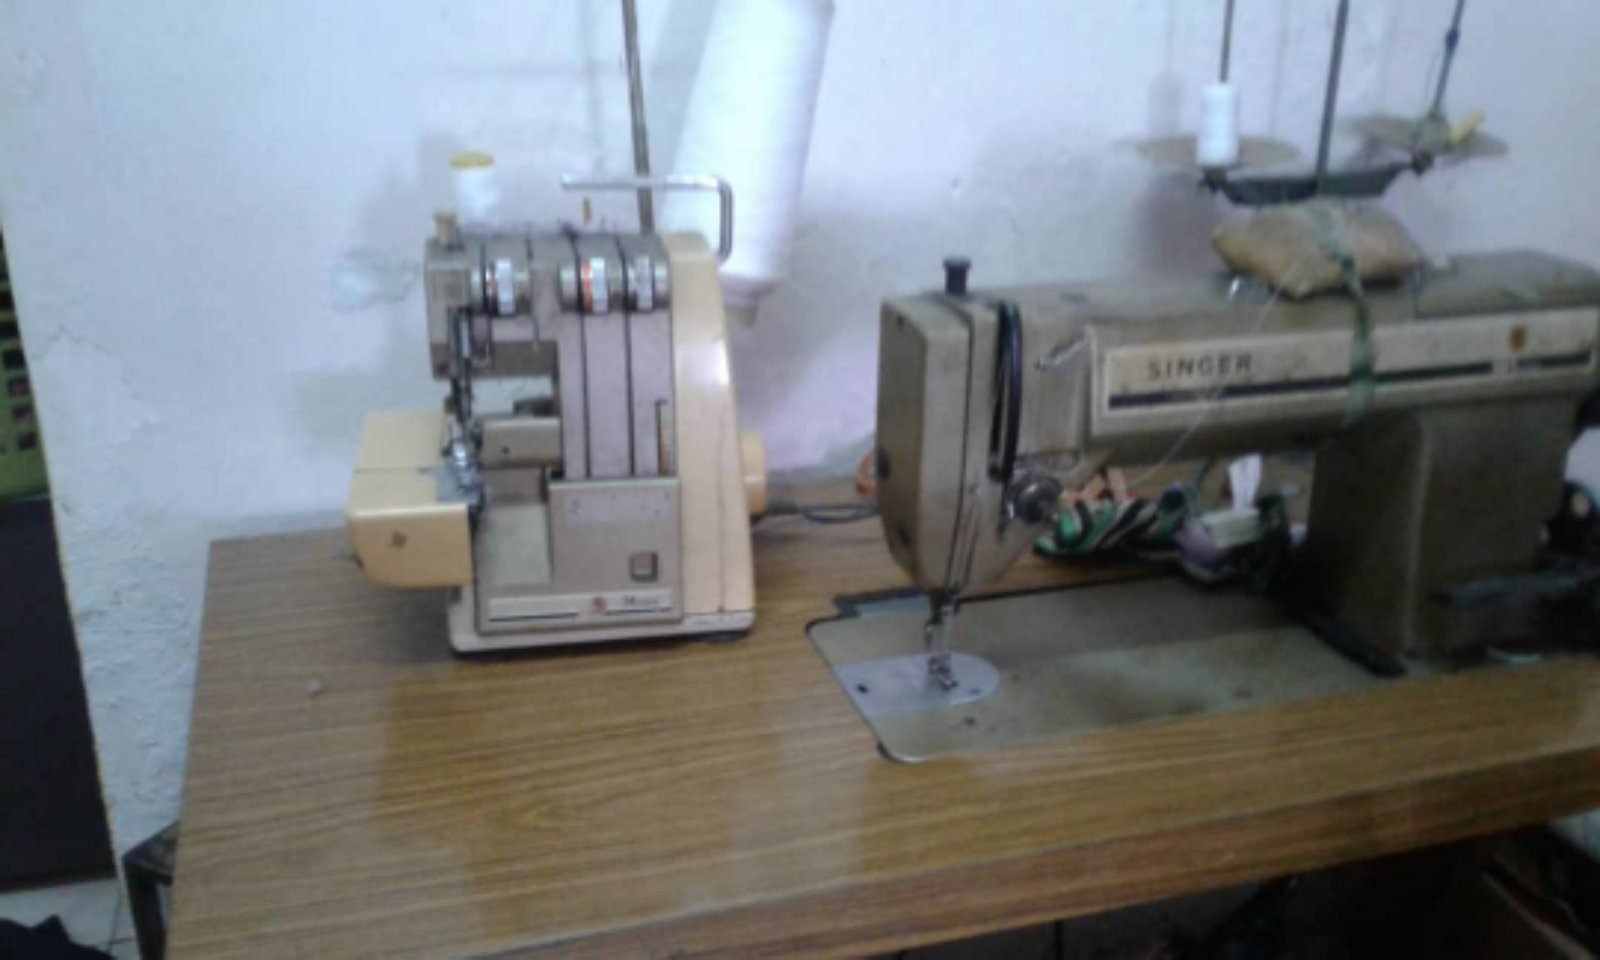 Second Hand Singer Portable Overlock And Singer Hi Speed Sewing Machine